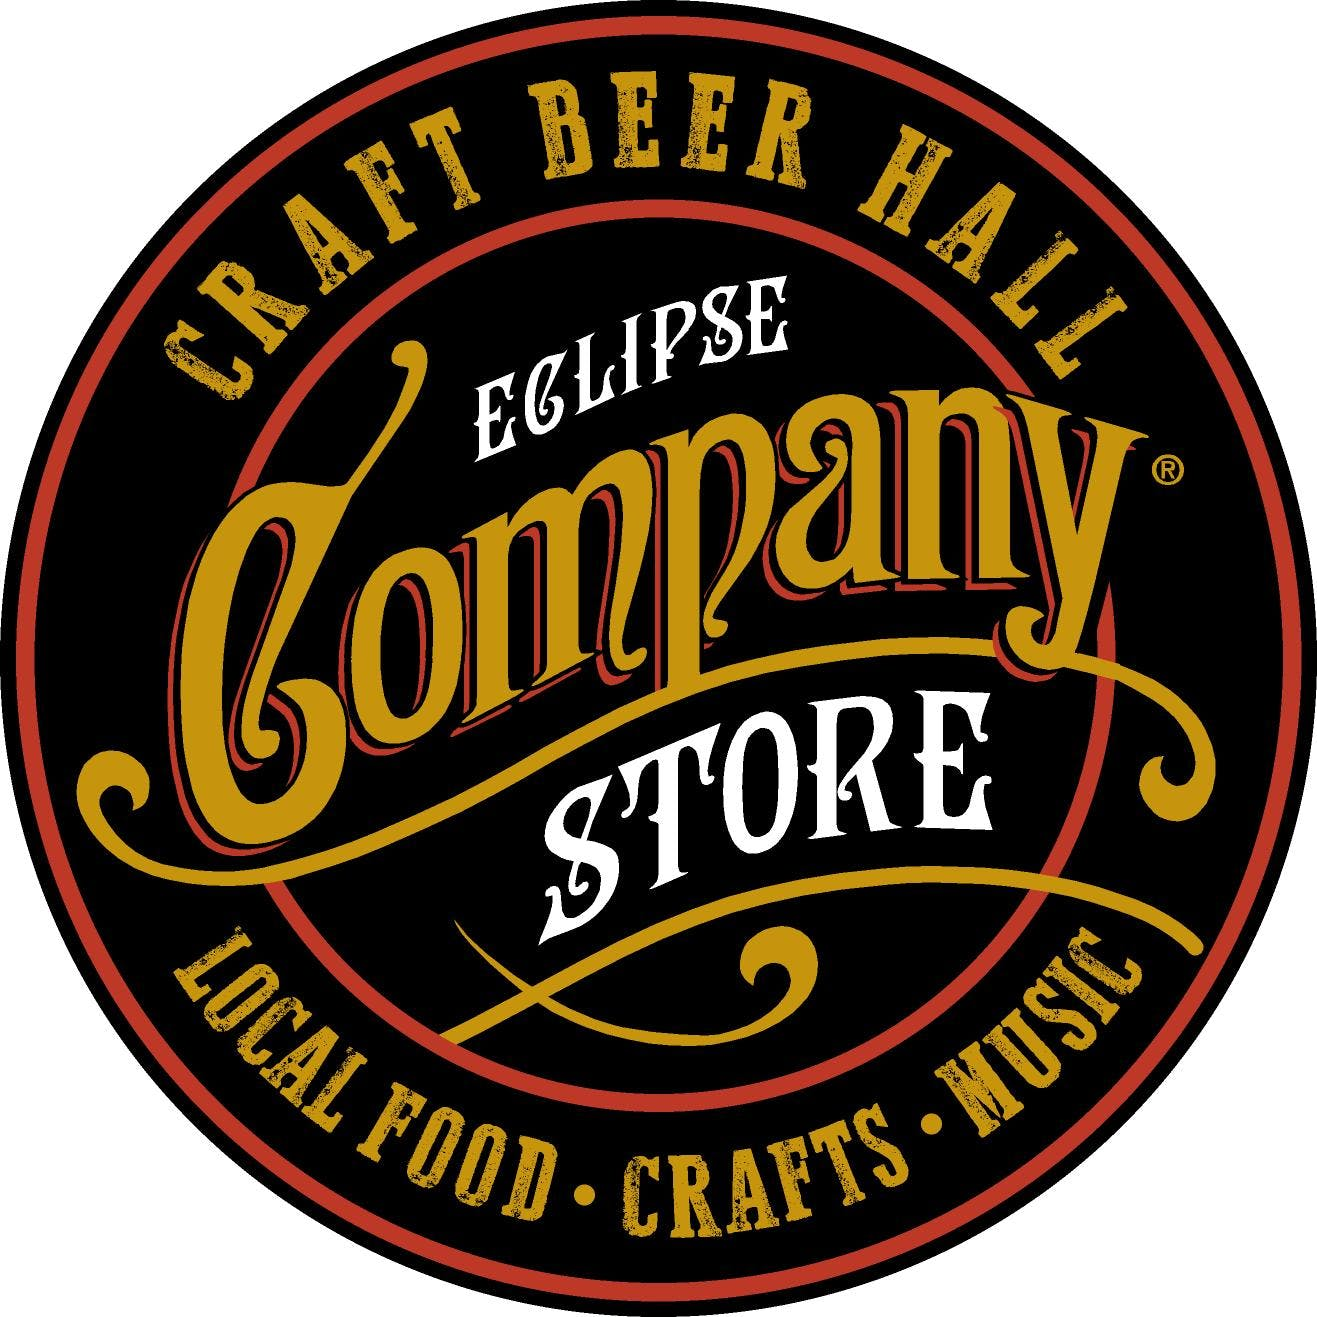 Beer List – Eclipse Company Store